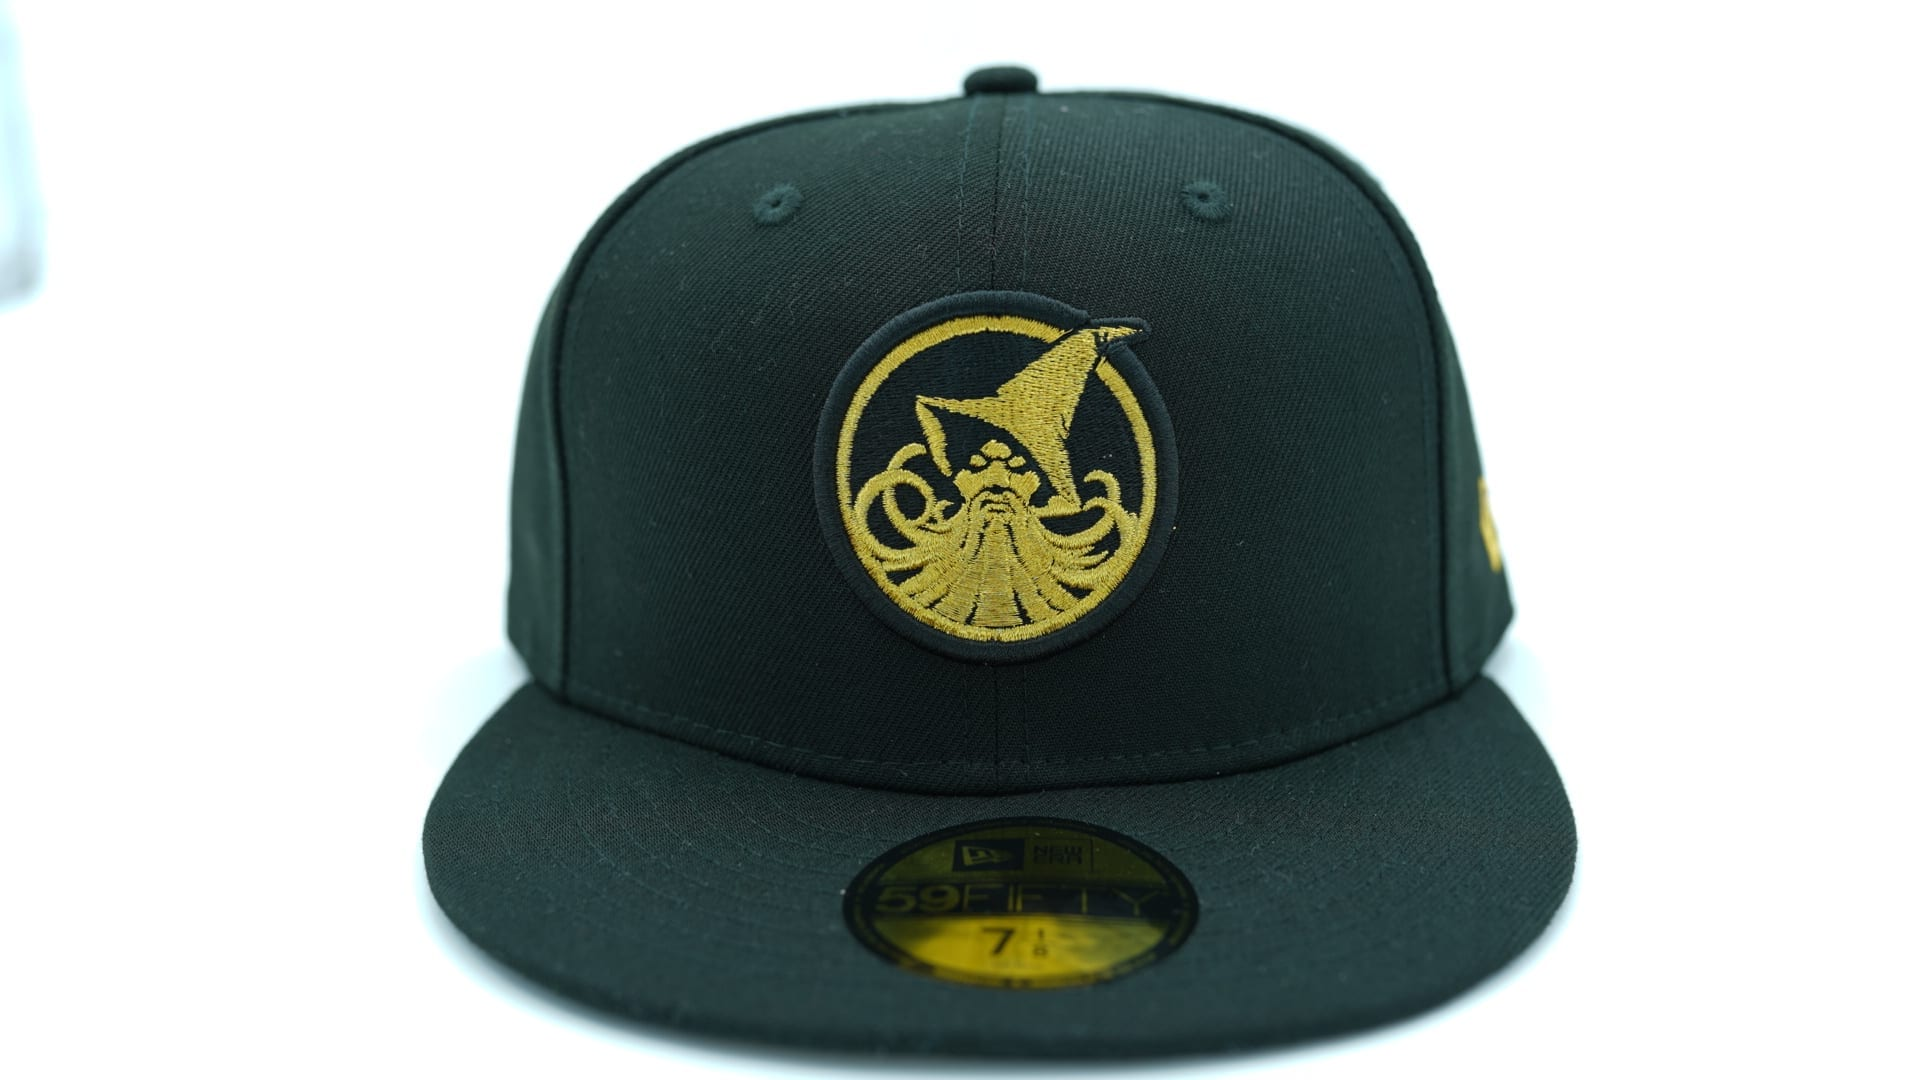 Notre Dame Fighting Irish Navy Memory Fit Fitted Cap by Top of the World Dynasty x NCAA